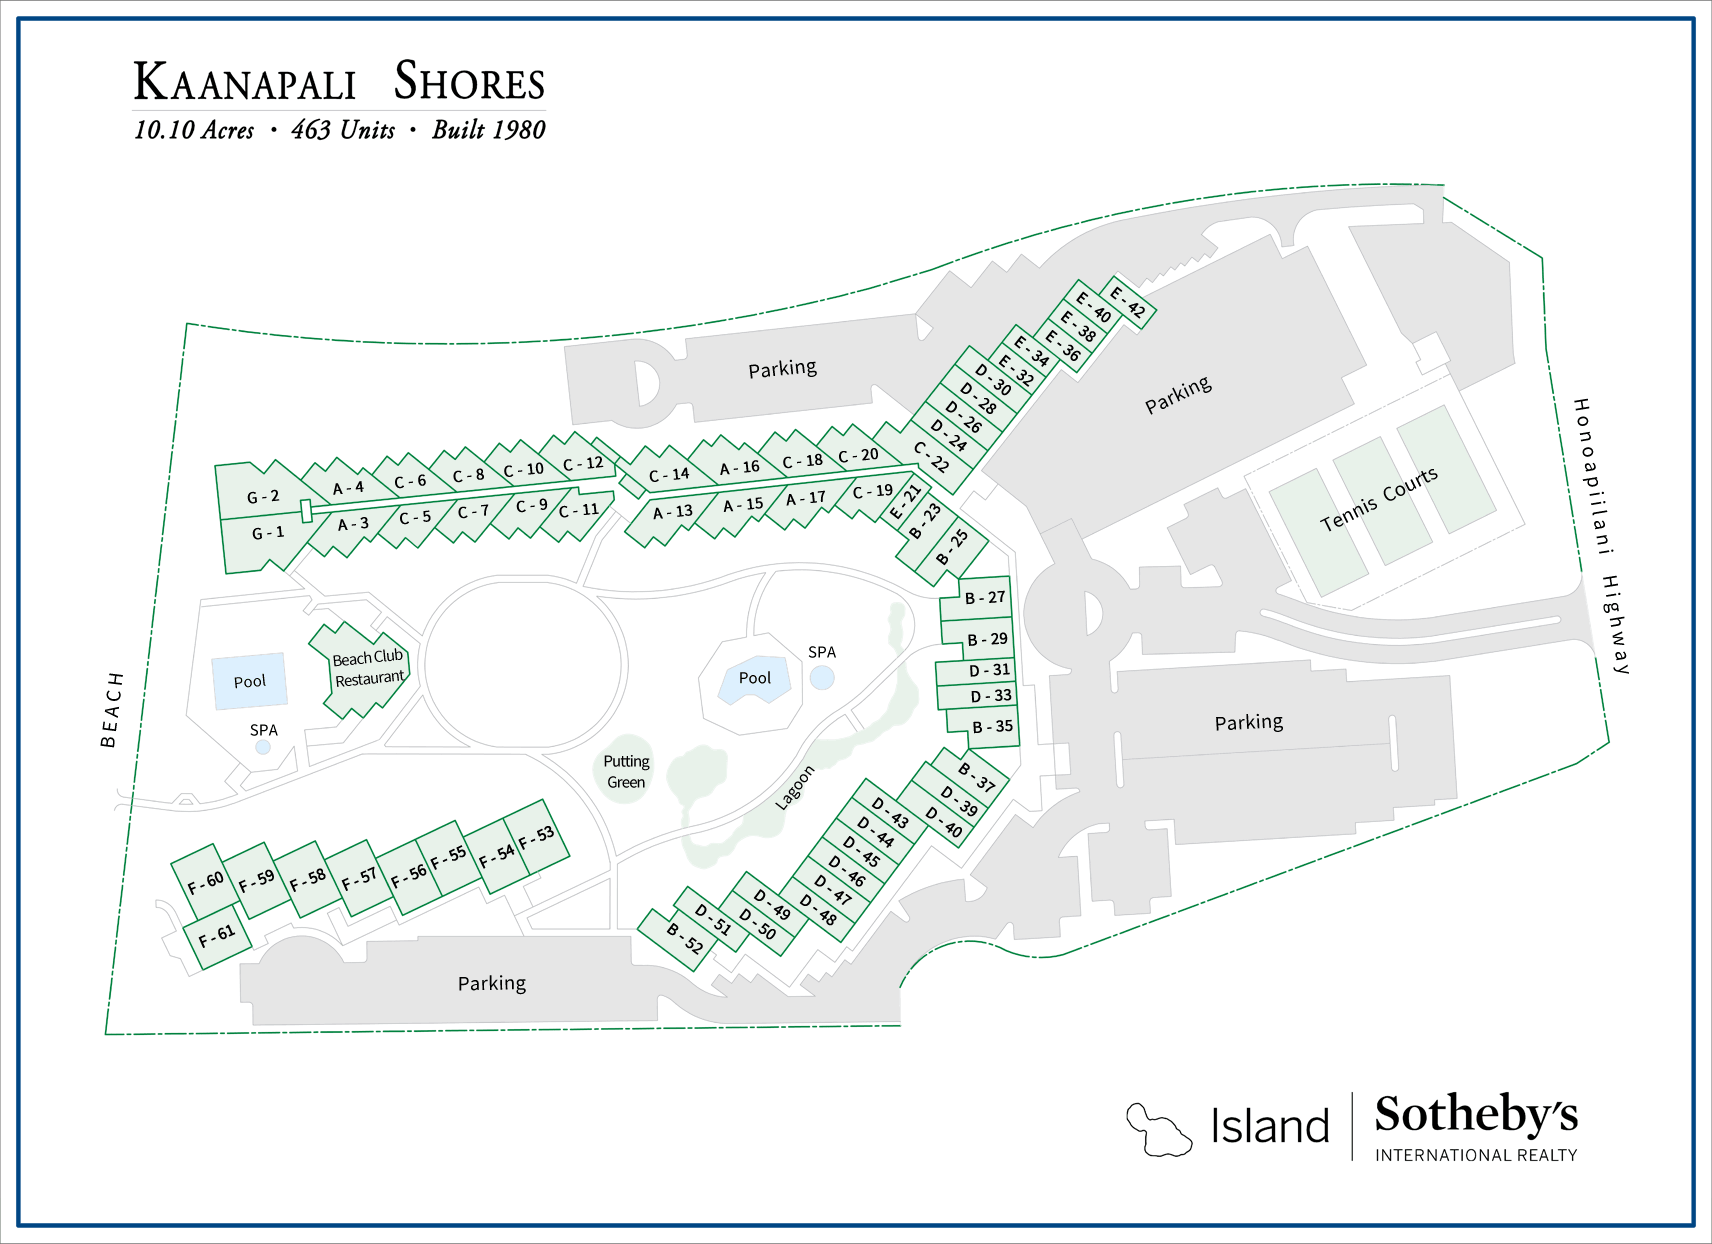 kaanapali shores map